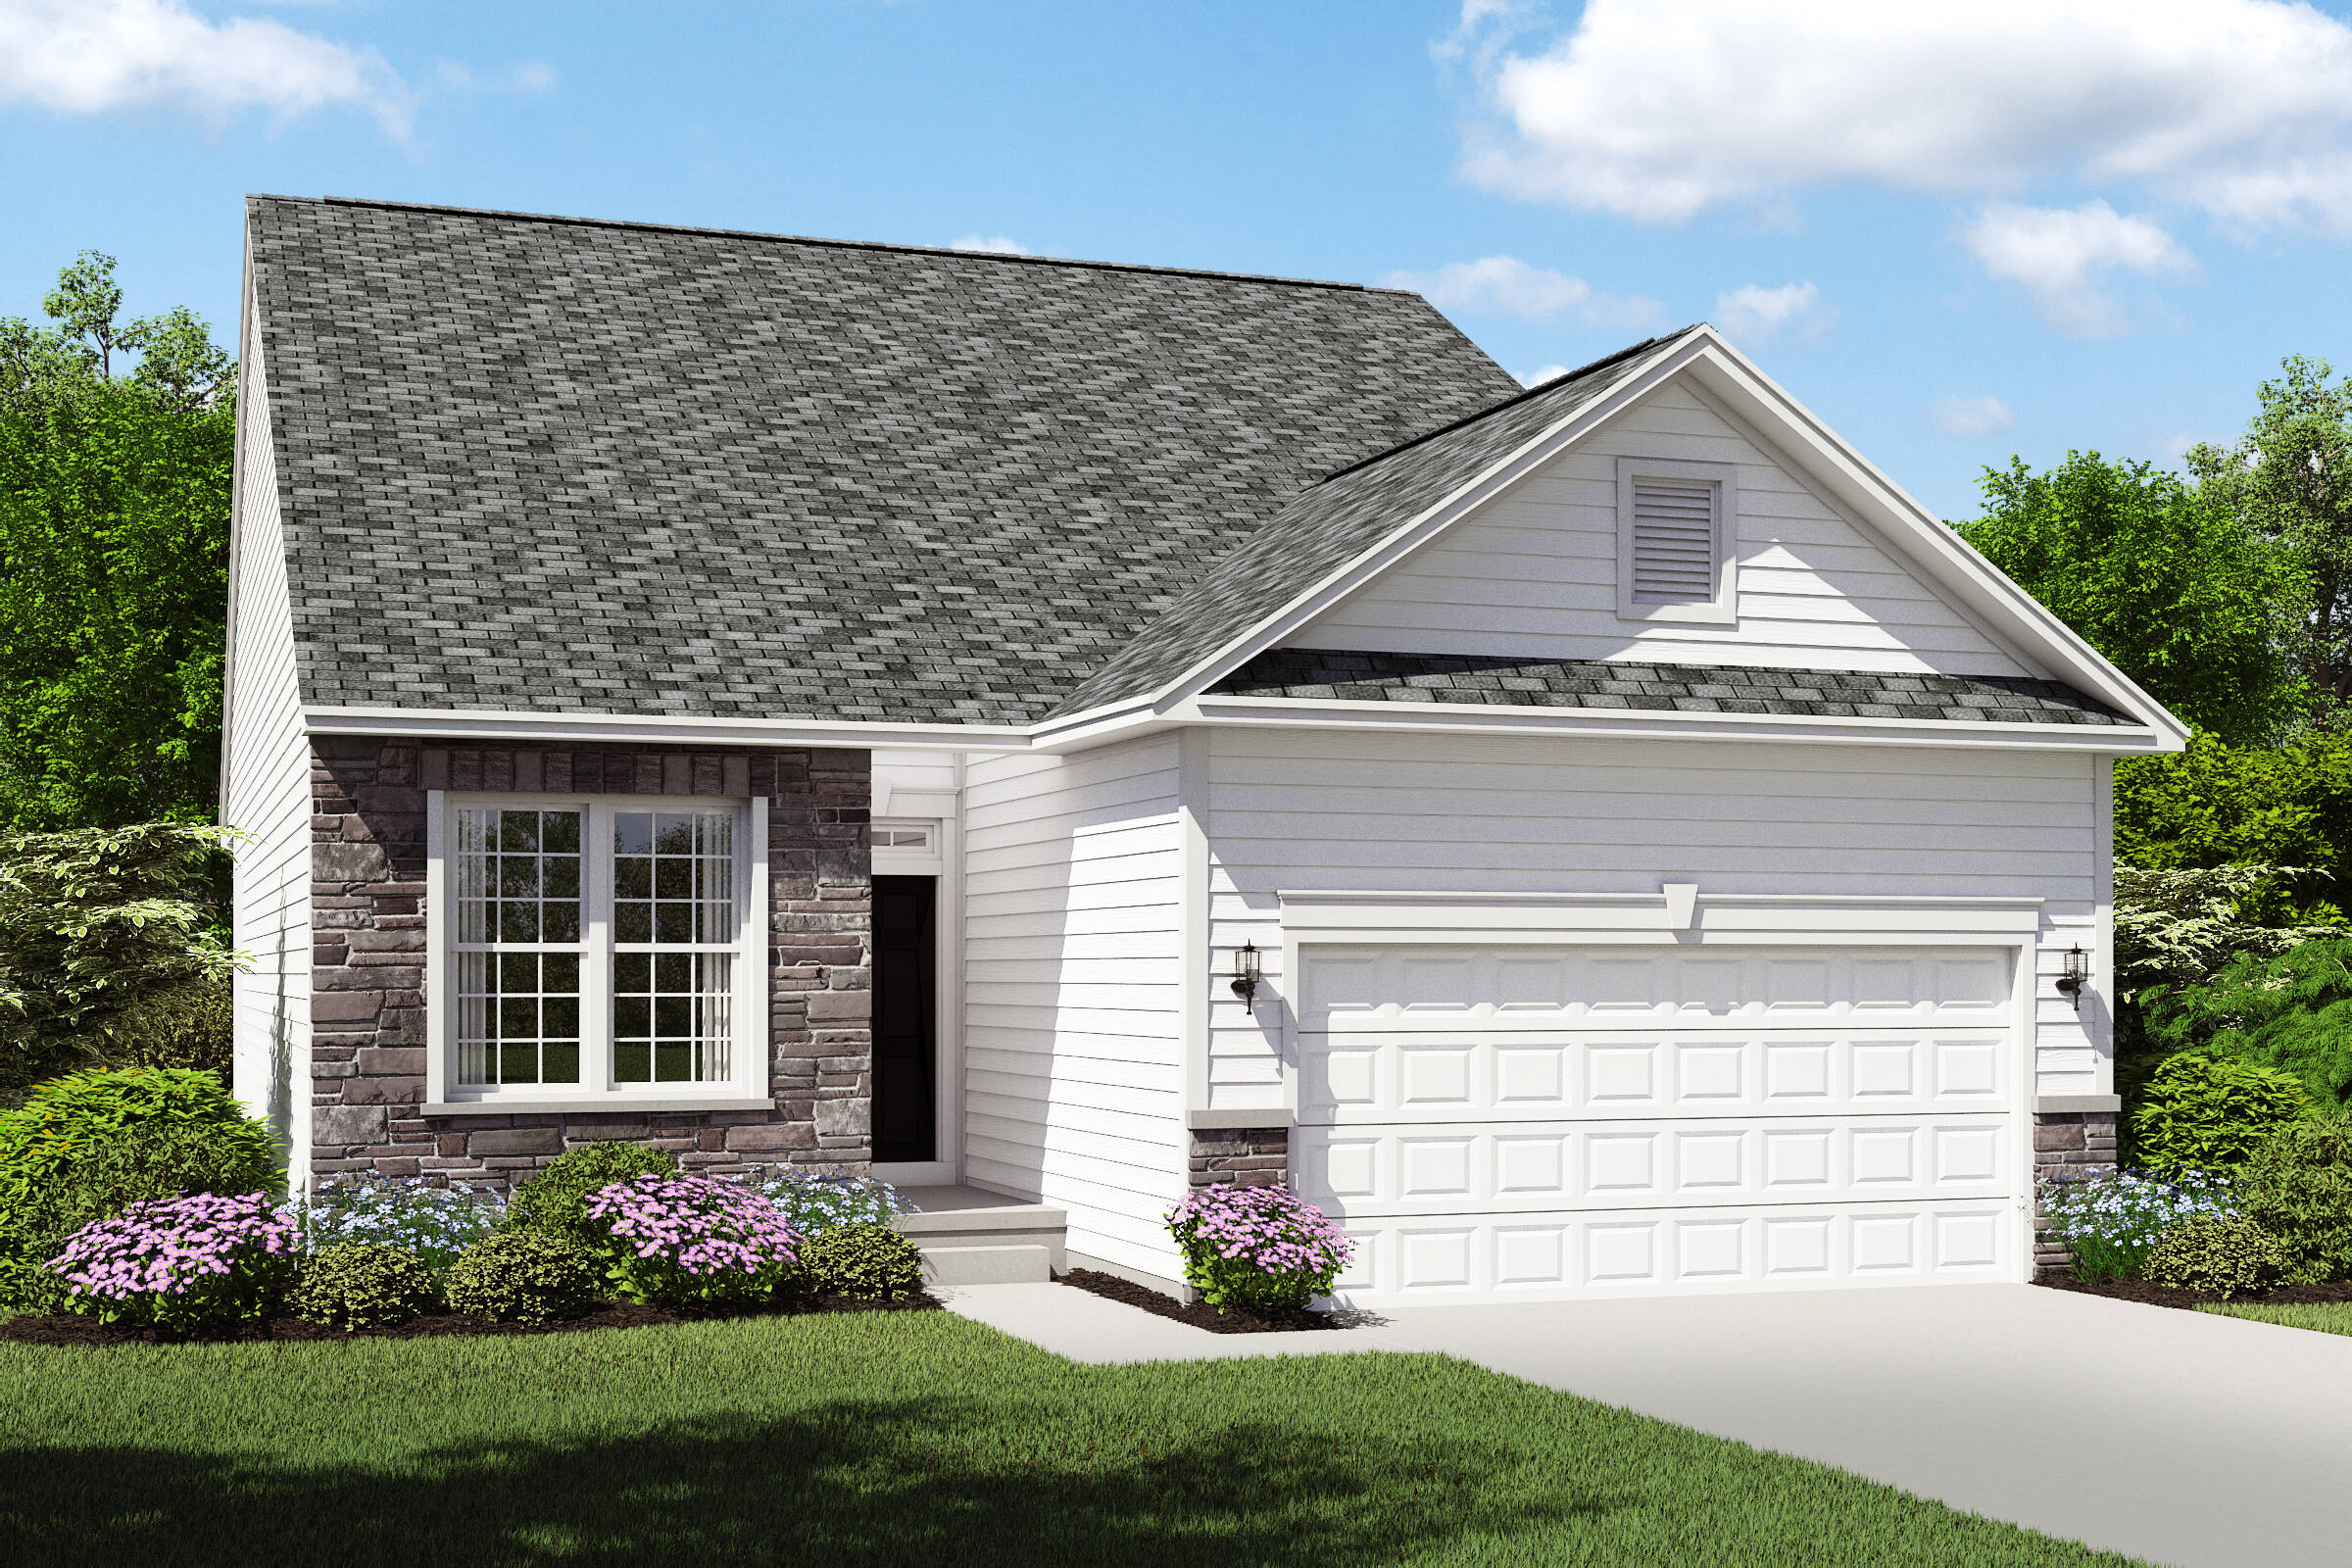 athens bt k hovnanian homes new homes northeast ohio